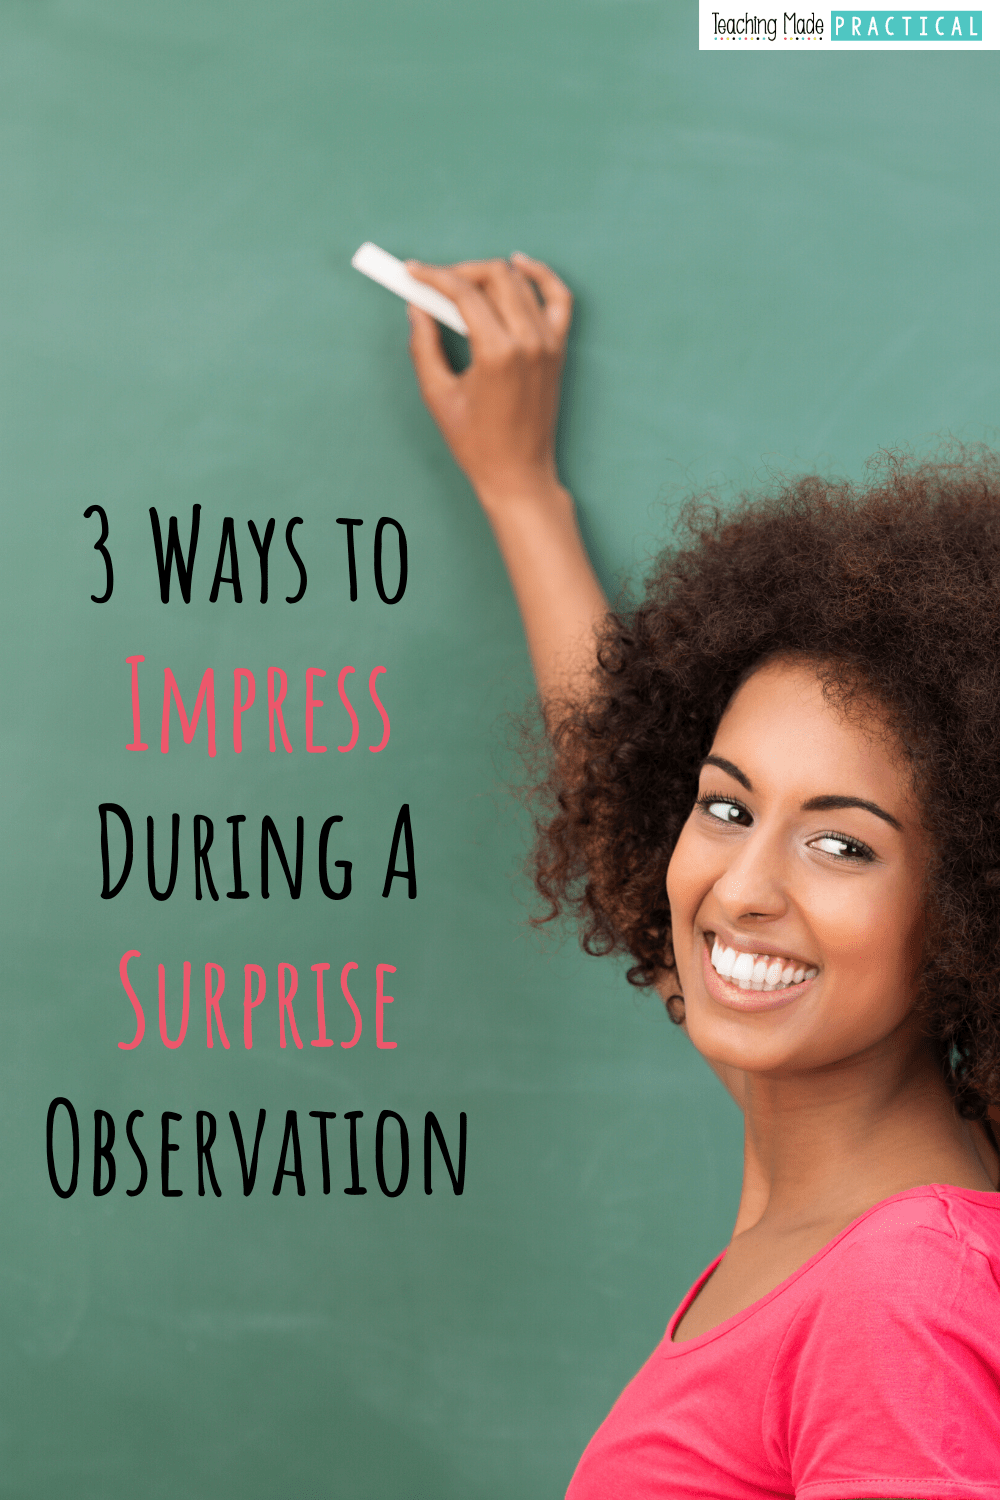 3 Ways to Impress During a Surprise Classroom Observation